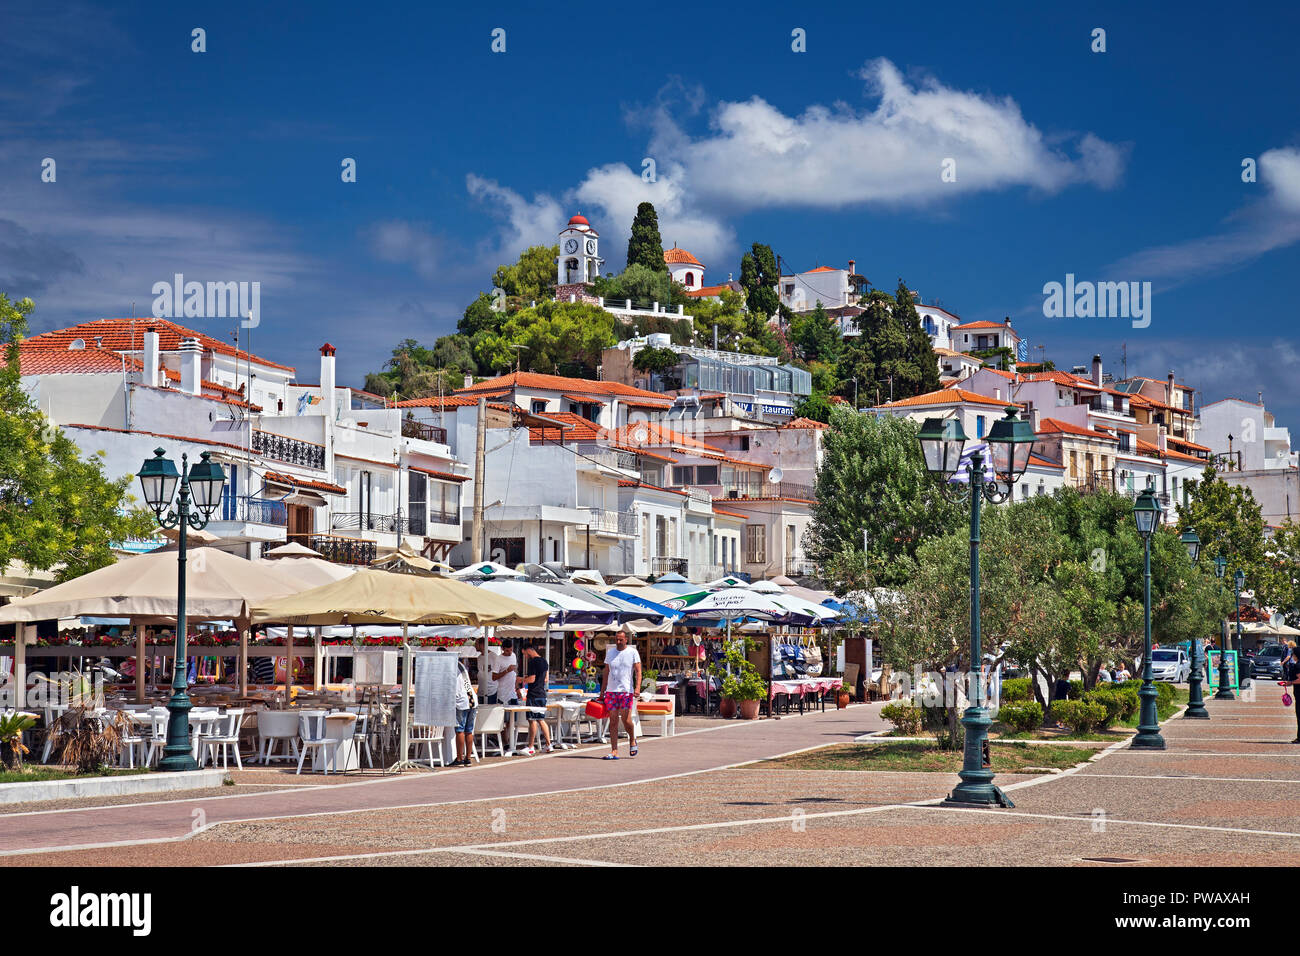 The church and the clock tower of Agios Nikolaos, one of the best viewpoints of Skiathos town, Skiathos island, Northern Sporades, Magnessia, Greece. - Stock Image